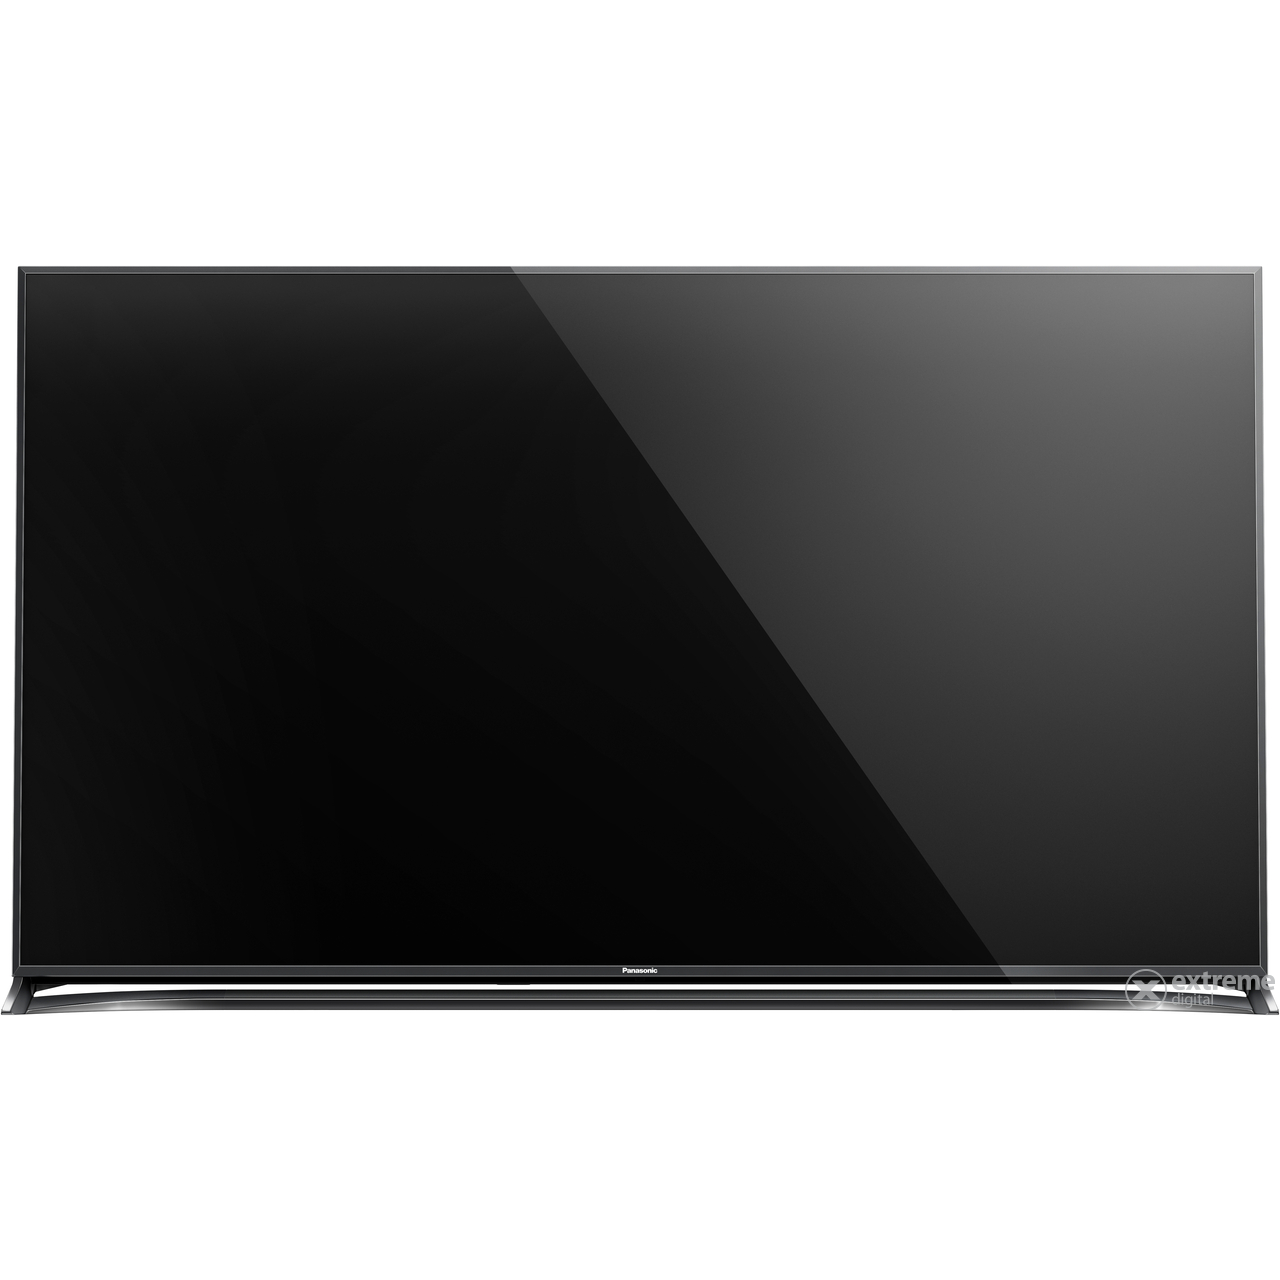 panasonic-tx-40cx800e-uhd-3d-smart-led-televizio_5768bc74.jpg